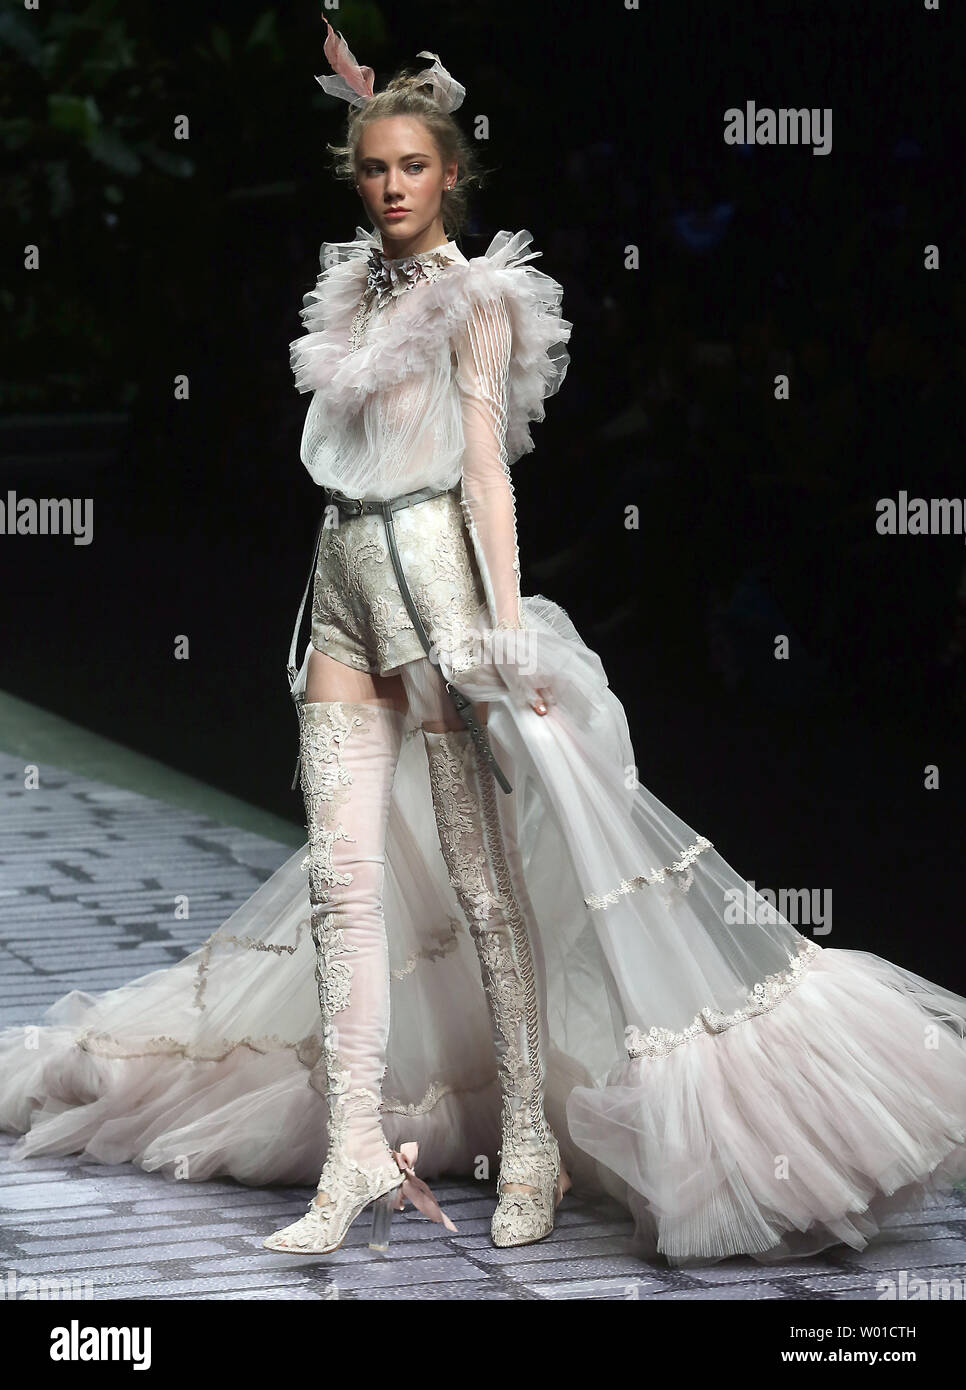 European Models Wear Dresses From The Jusere Bridal Collection Made By Chinese Fashion Designer Yu Aiping During China Fashion Week Being Held In Beijing On March 28 2017 Chinese Fashion Designers Are